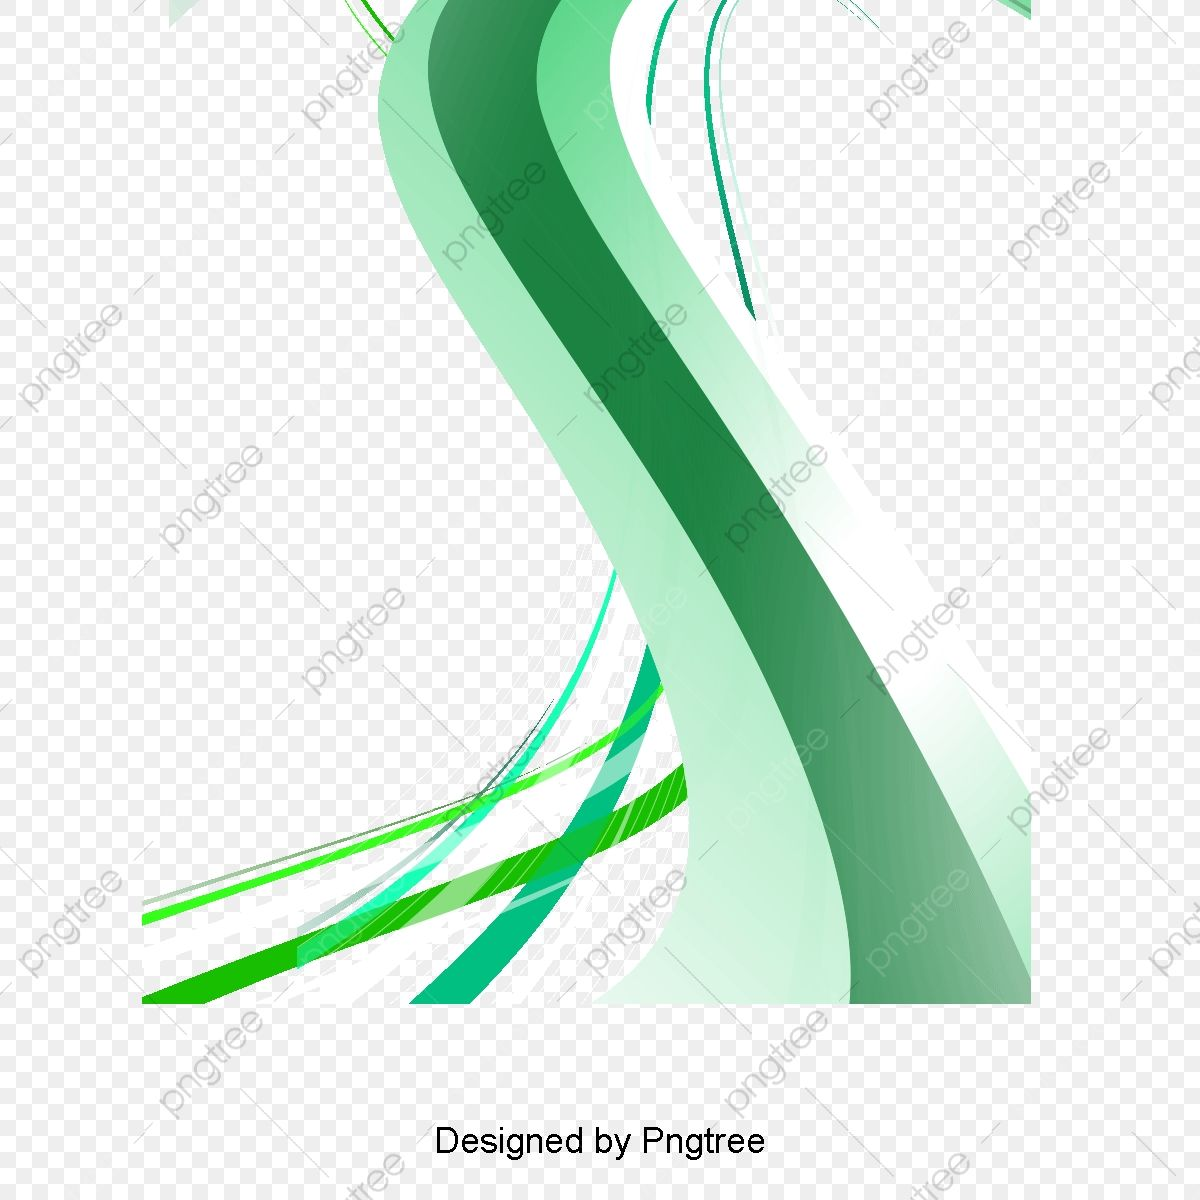 Smooth Gradation Curve Lines Striped Background Ornament Curved Lines Lines Vector Background Vector Curve Vector Png Transparent Clipart Image And Psd File Di 2020 Spanduk